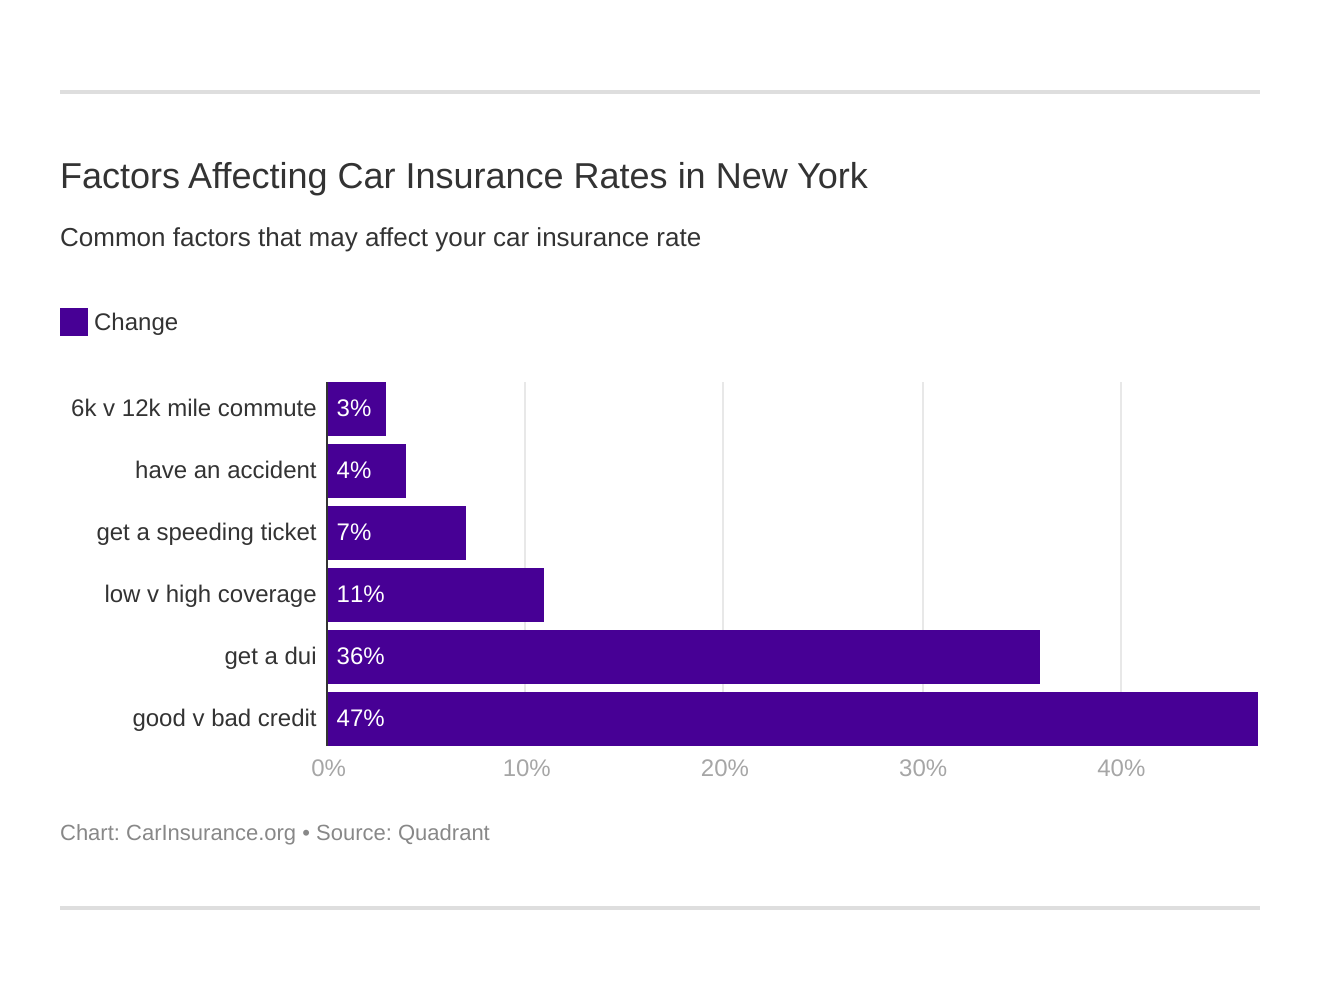 Factors Affecting Car Insurance Rates in New York